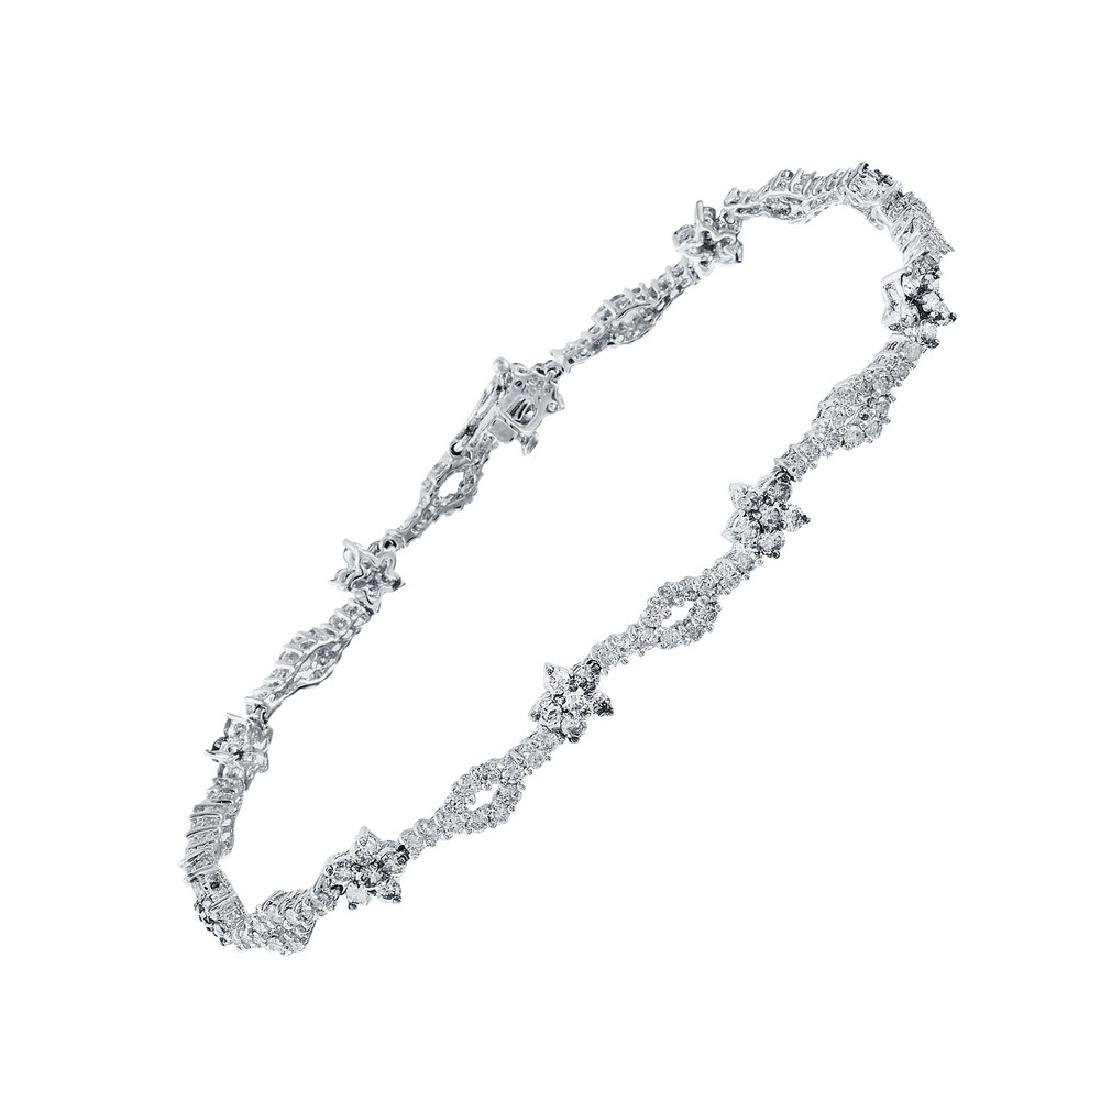 Genuine 2.83 TCW 14K White Gold Ladies Bracelet